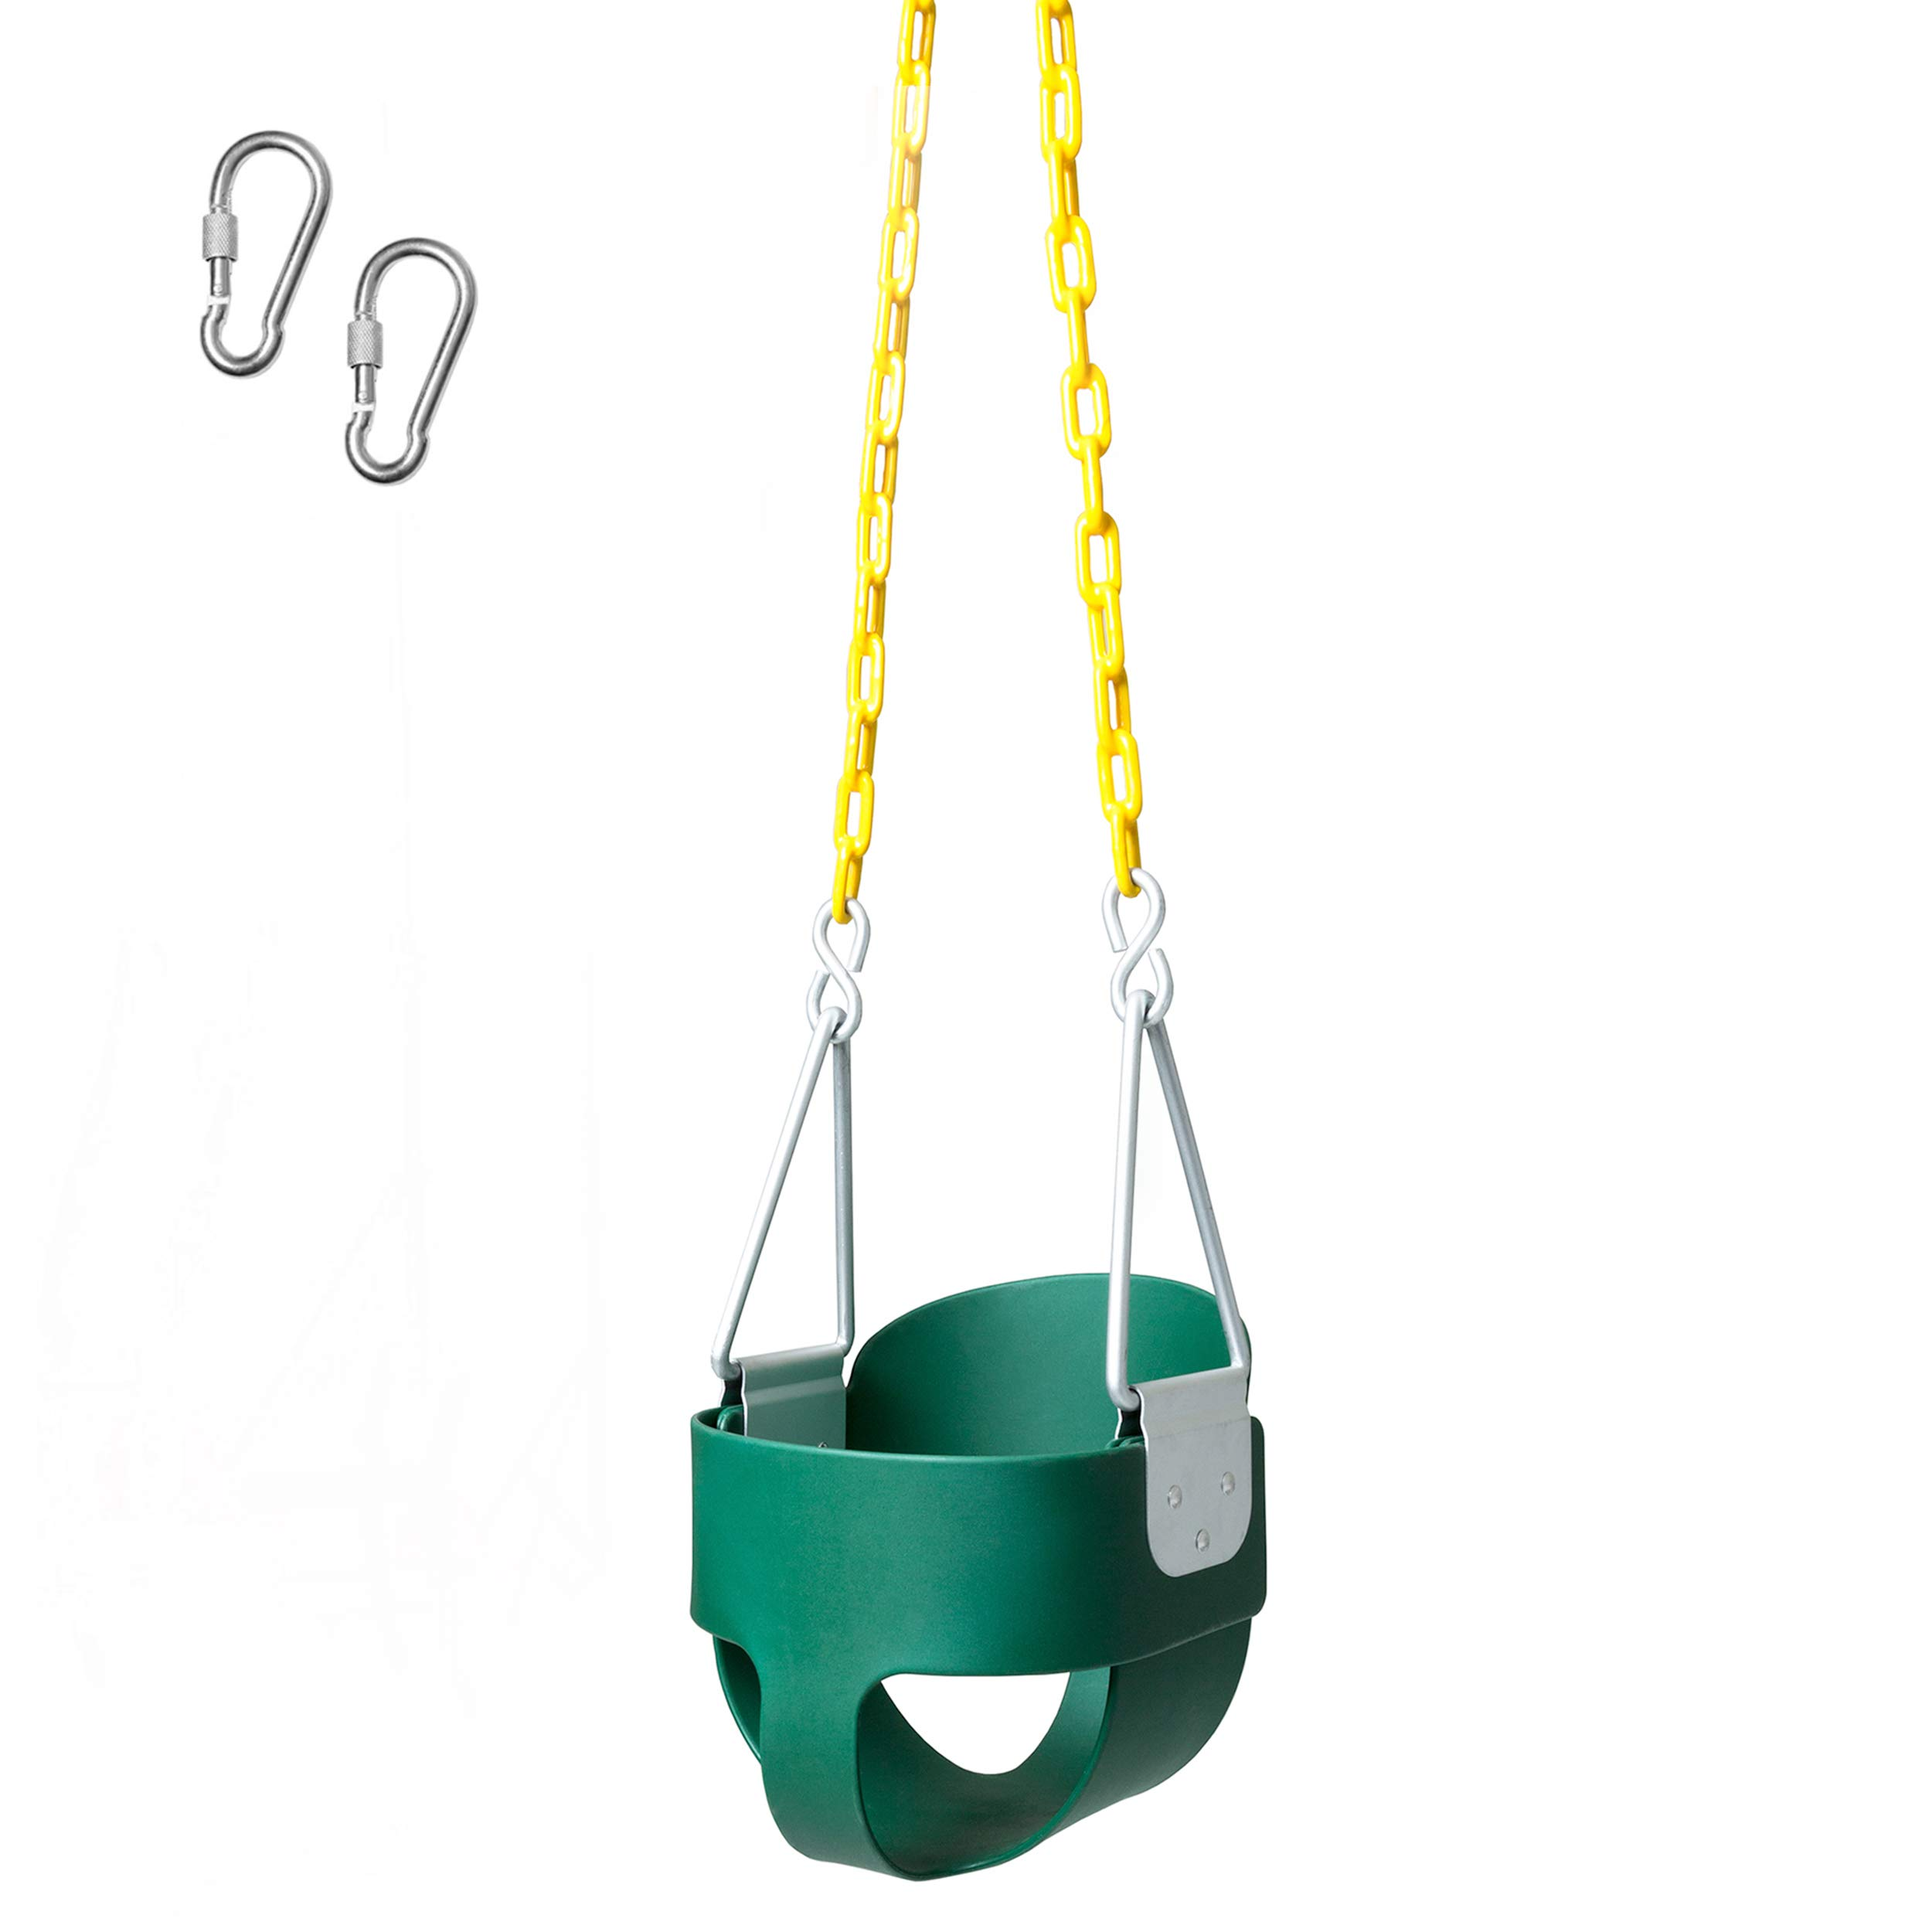 Heavy Duty High Back Toddler Bucket Swing - 250 lb Weight Capacity, Fully Assembled, Safety Coated Swing Chain Easy Setup by Barcaloo